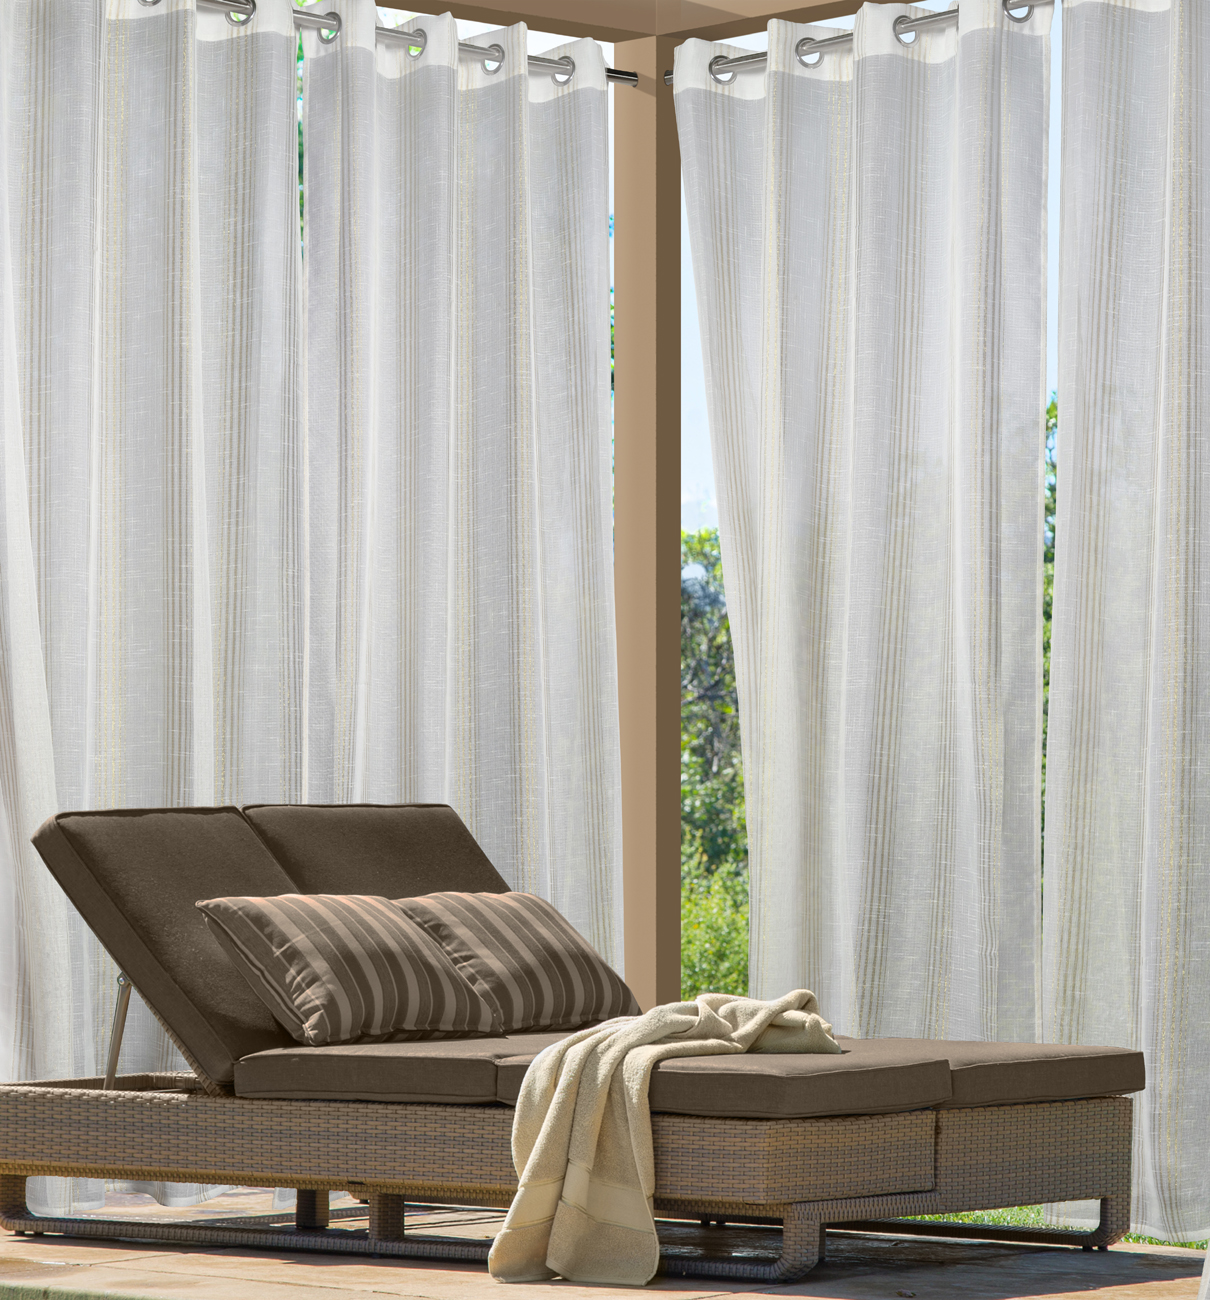 Gazebo curtains outdoor - Louisa Outdoor Semi Sheer Metallic Pin Stripe Grommet Curtain Panel